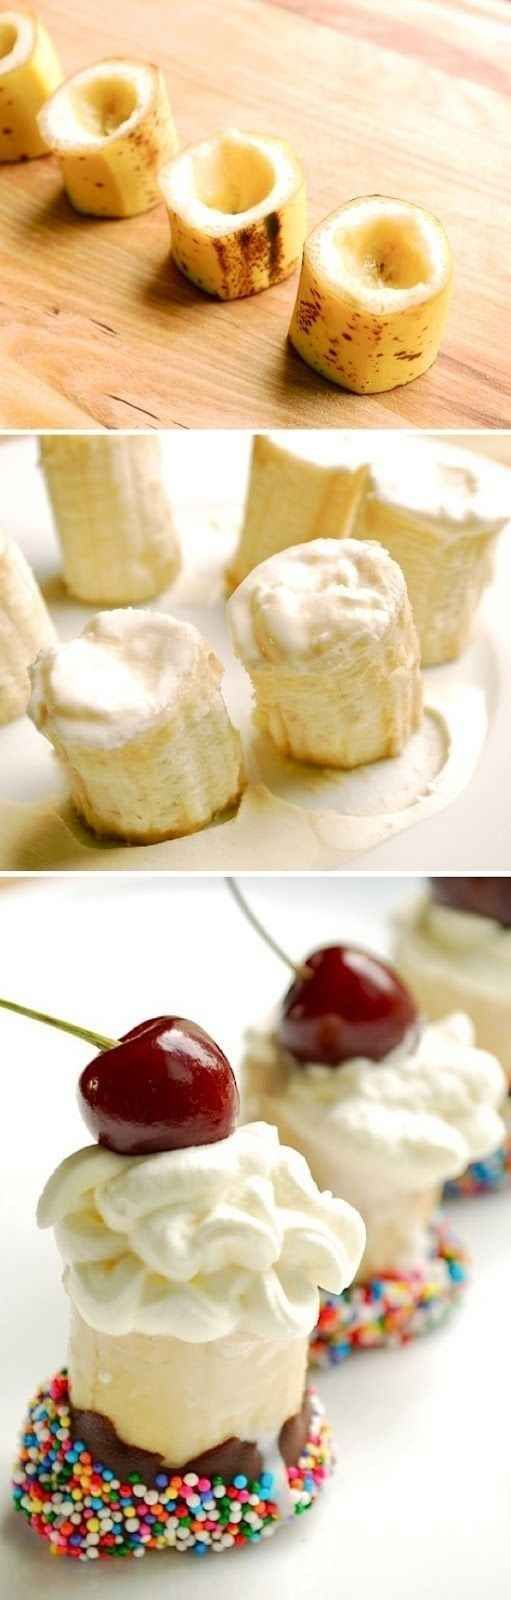 Banana Split Bites | 19 Tiny Desserts You Can Eat In One Bite